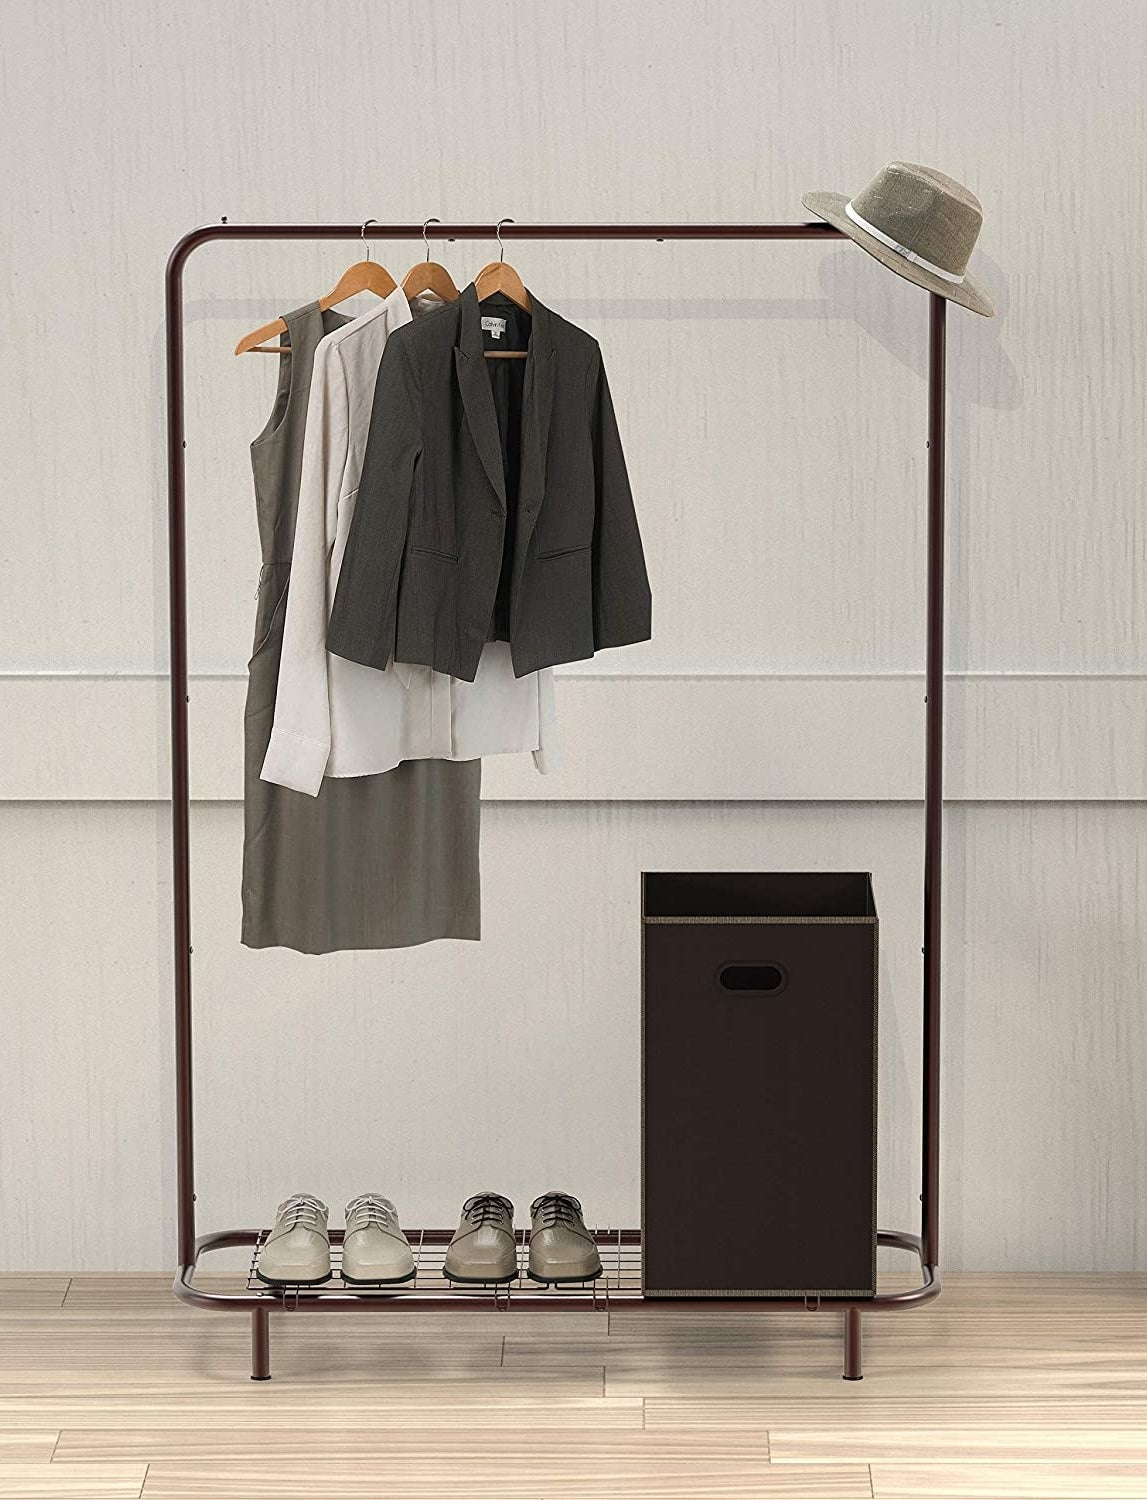 Several articles of clothing hanging on a garment rack with shoes and a bin resting on the attached bottom wire shelf